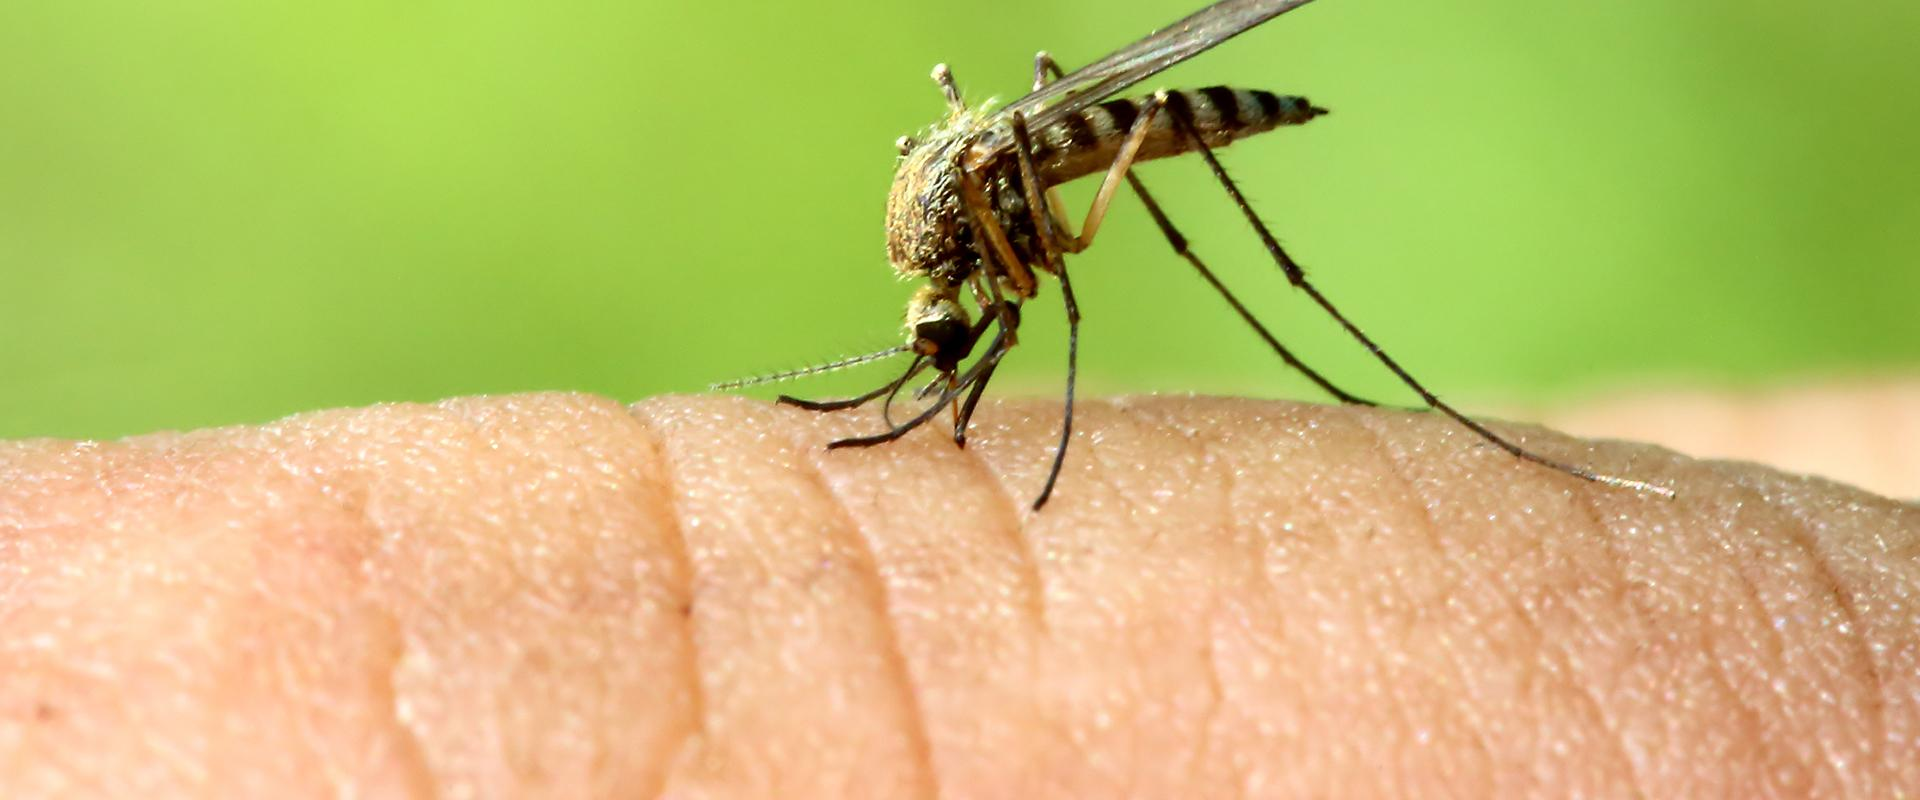 a close up of a mosquito on a finger